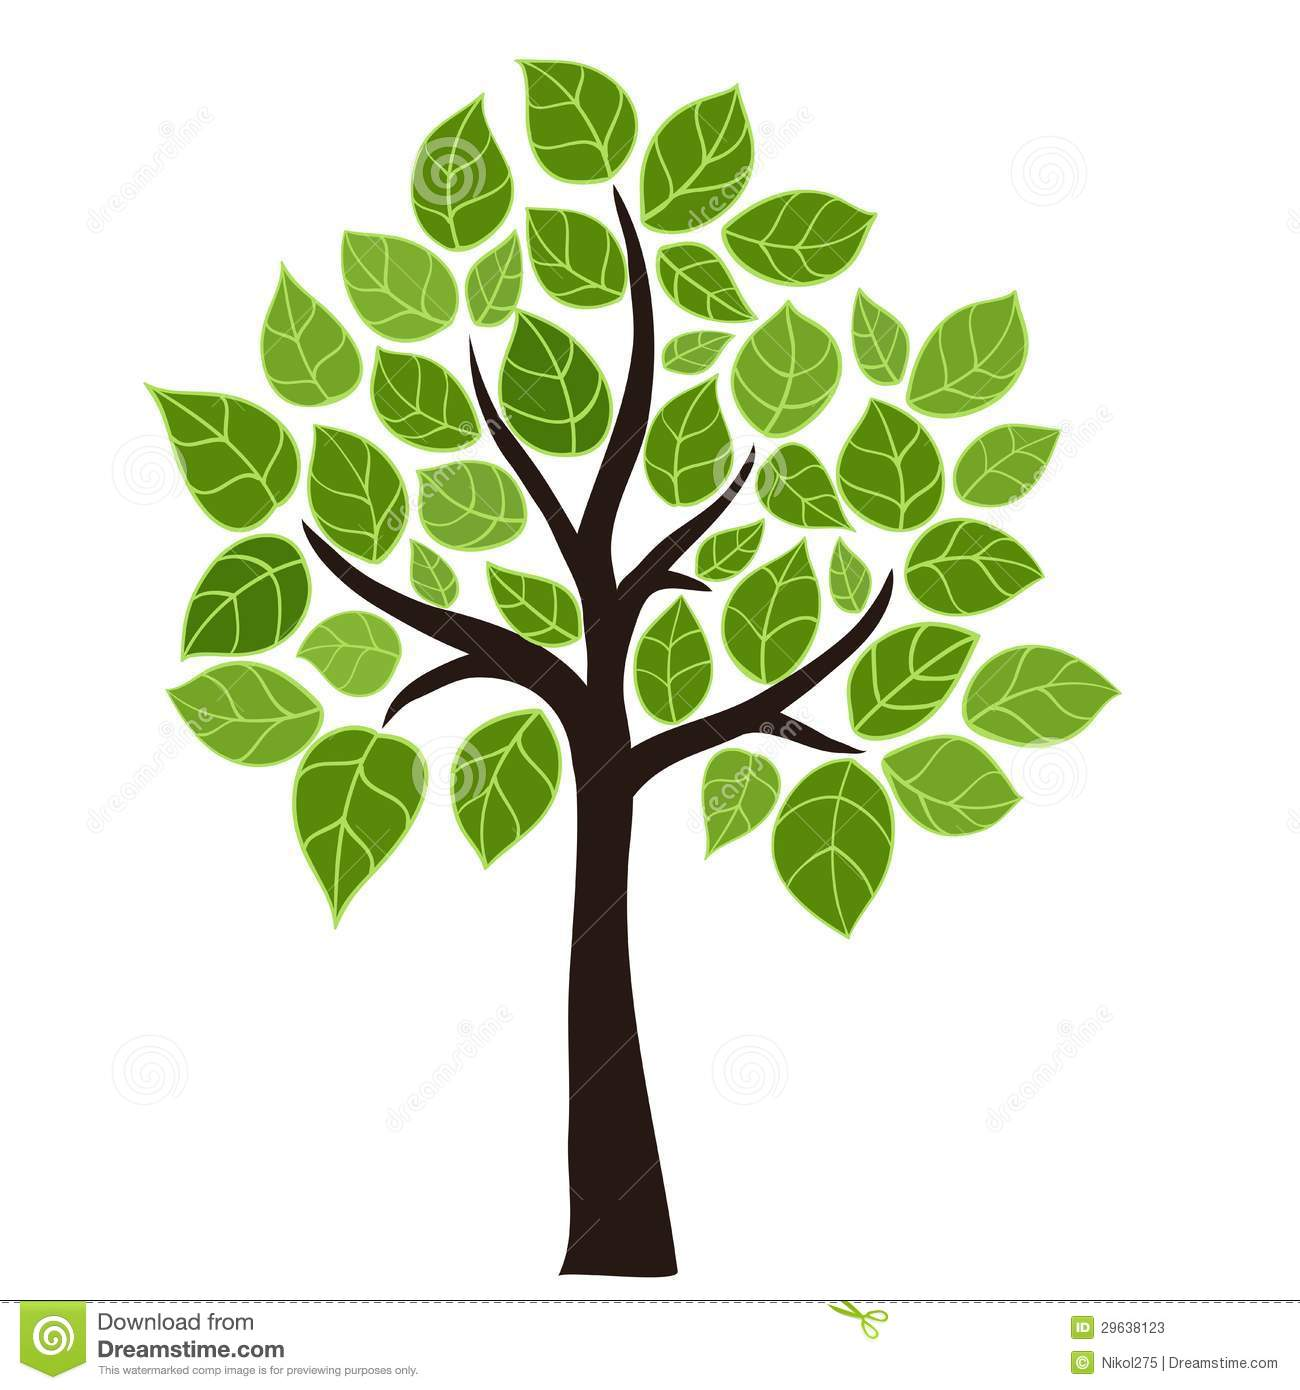 Stylized vector tree with green leafs. Element design.